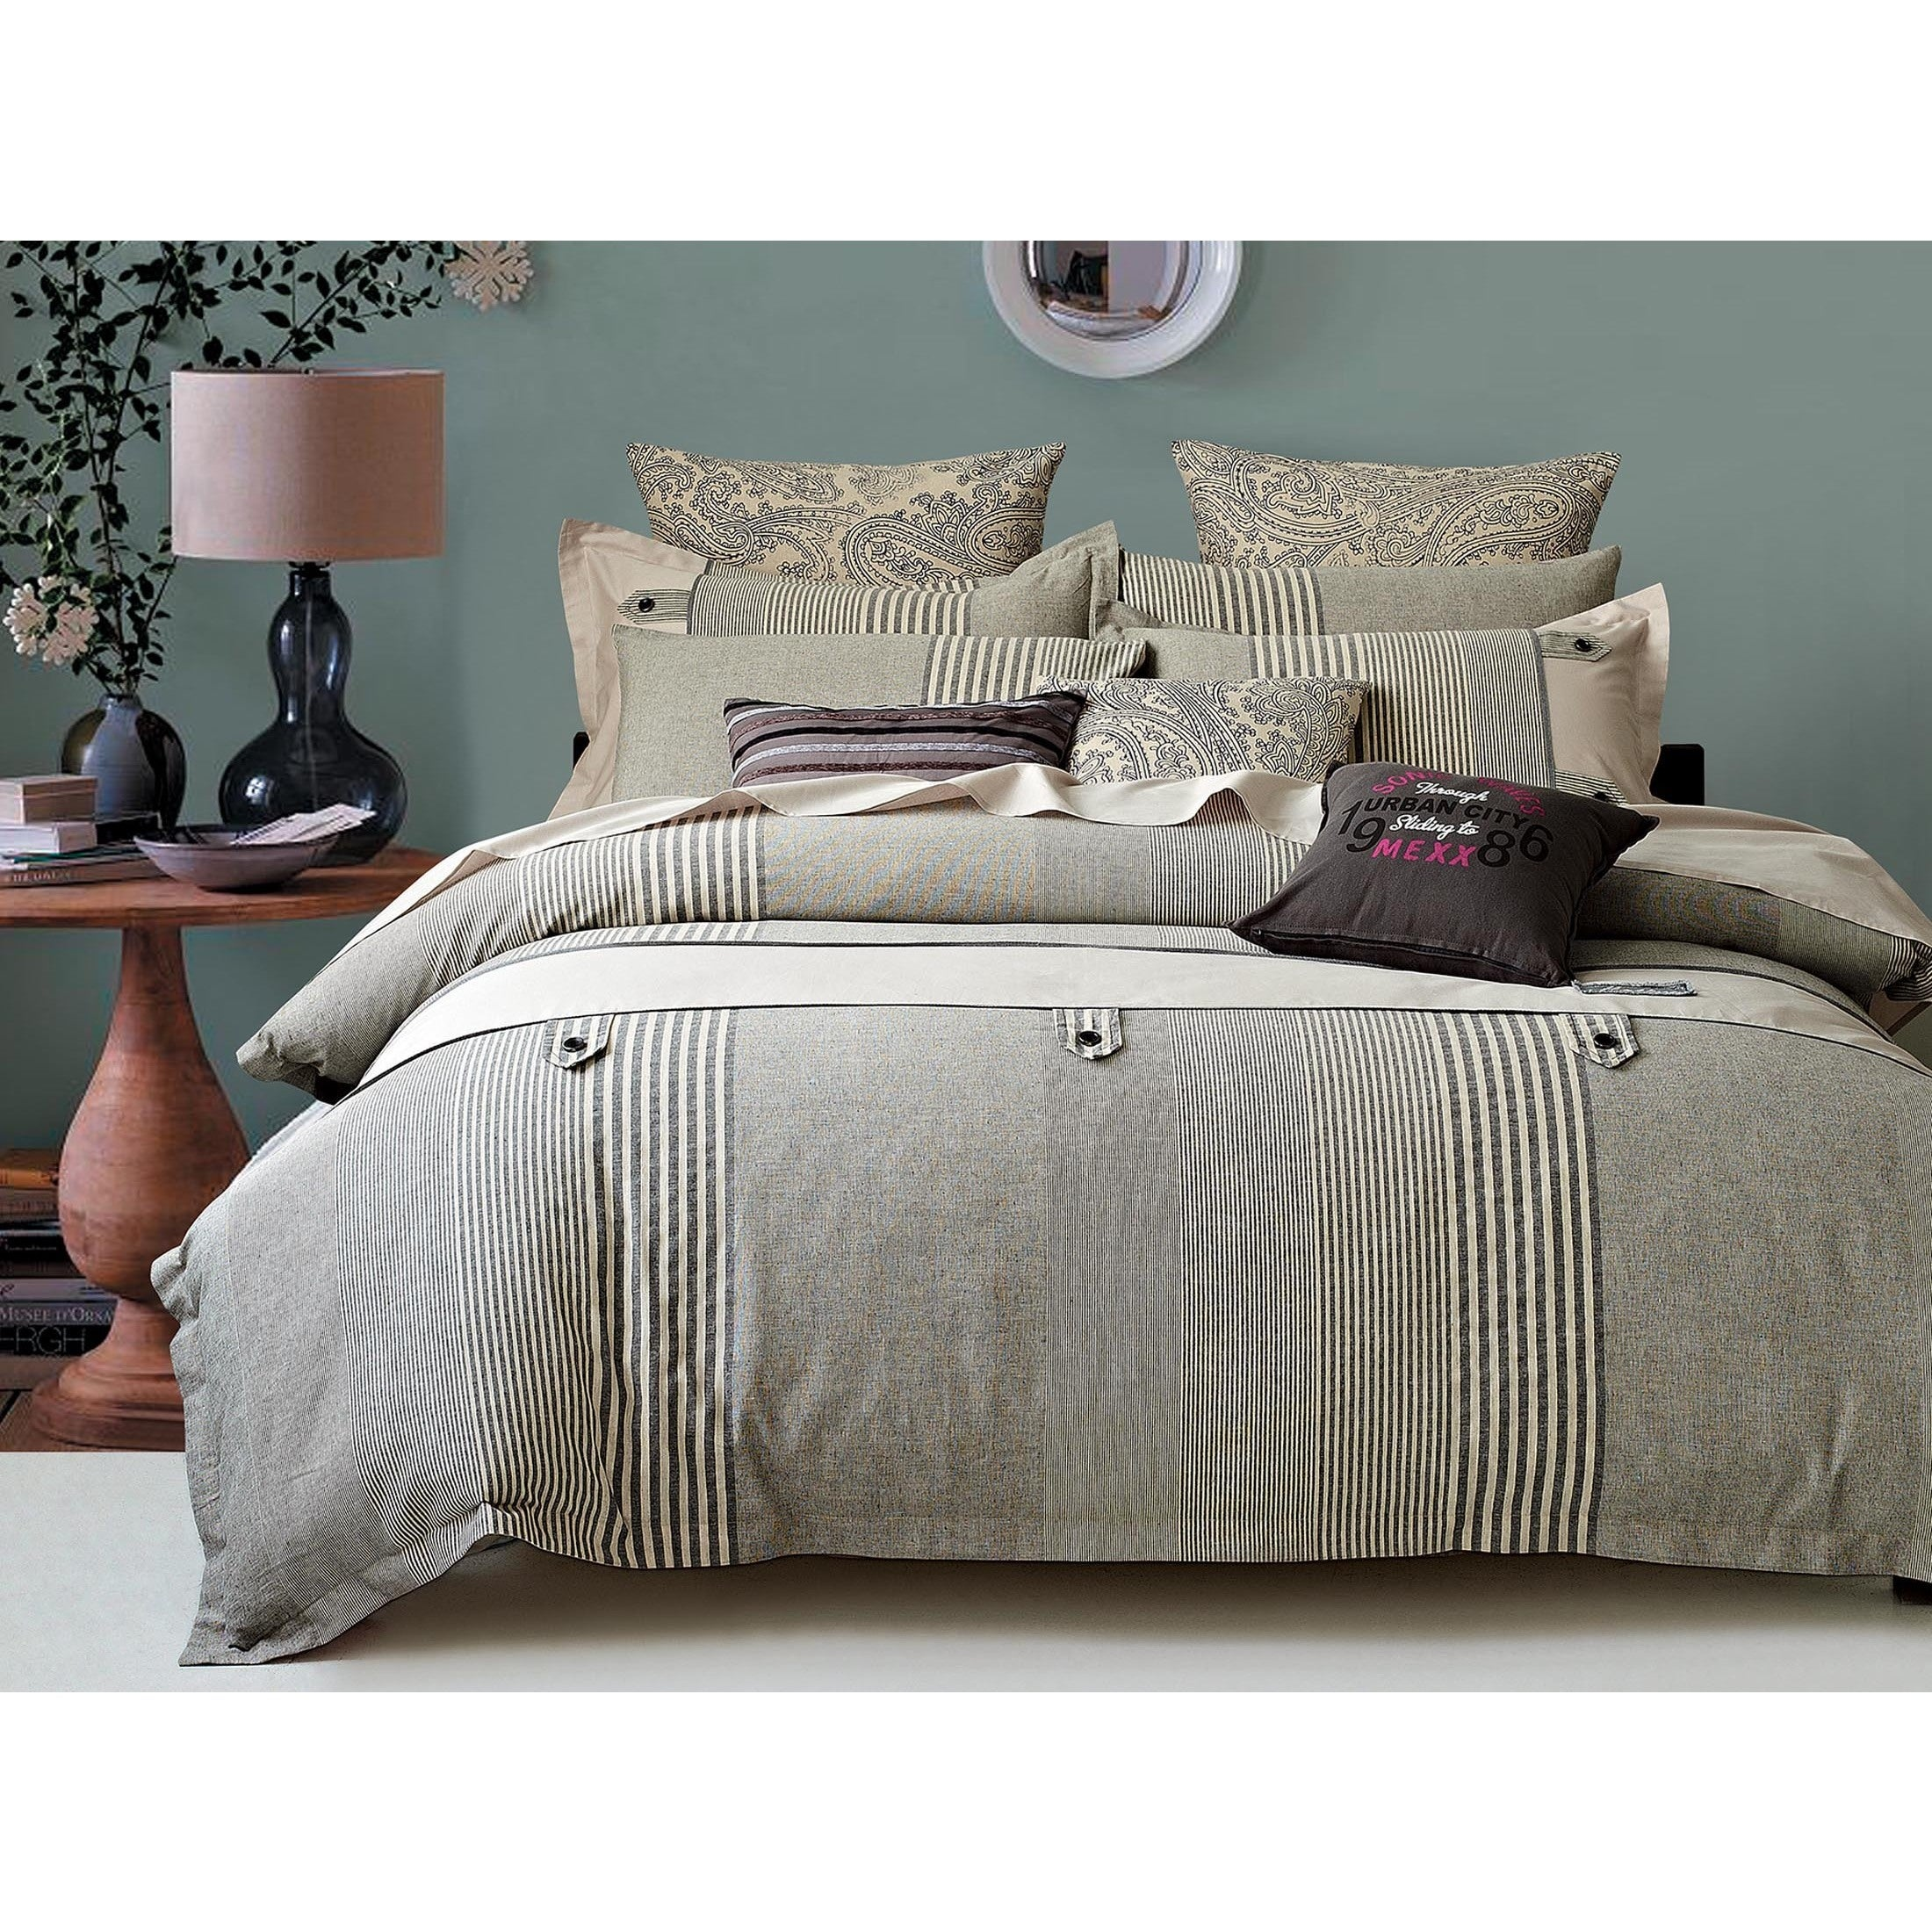 Egyptian Cotton Ons And Stripes 5 Piece Comforter Set On Free Shipping Today 10708796